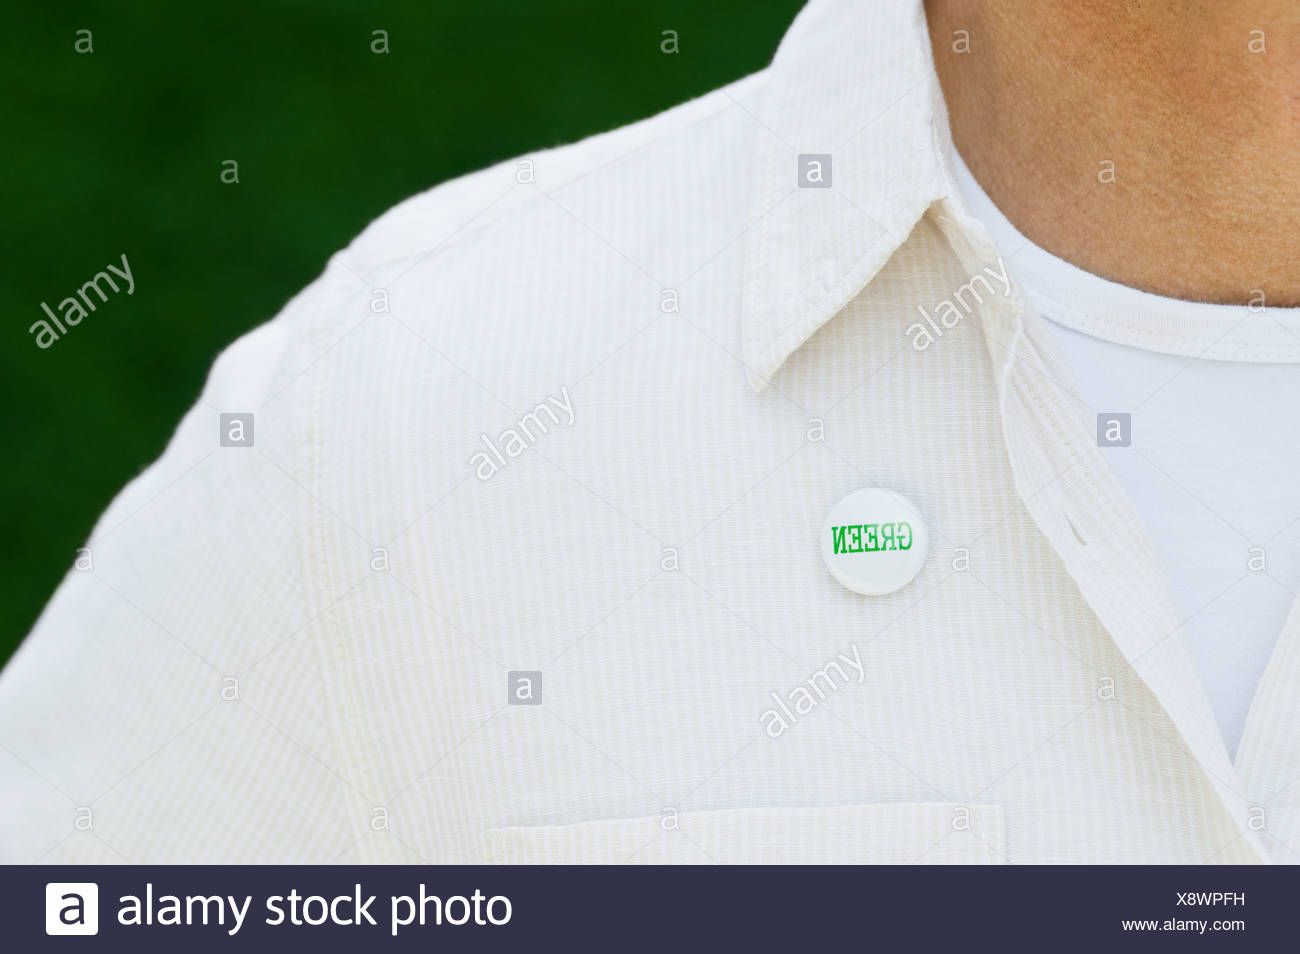 Eco-friendly button on man's shirt - Stock Image